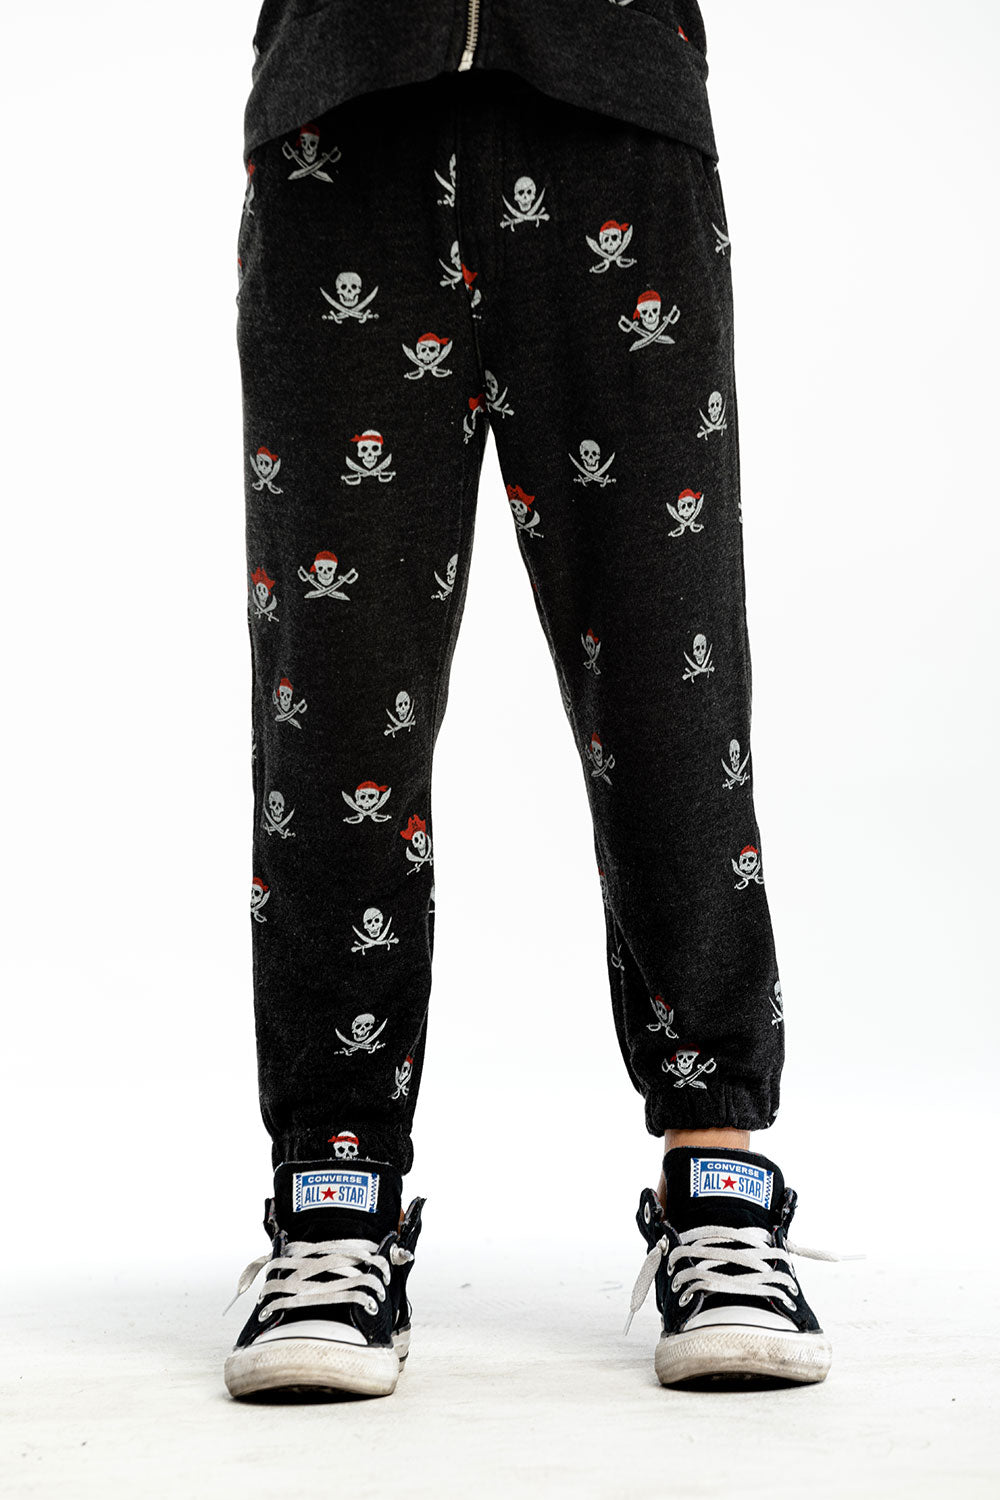 Pirate Pants BOYS chaserbrand4.myshopify.com